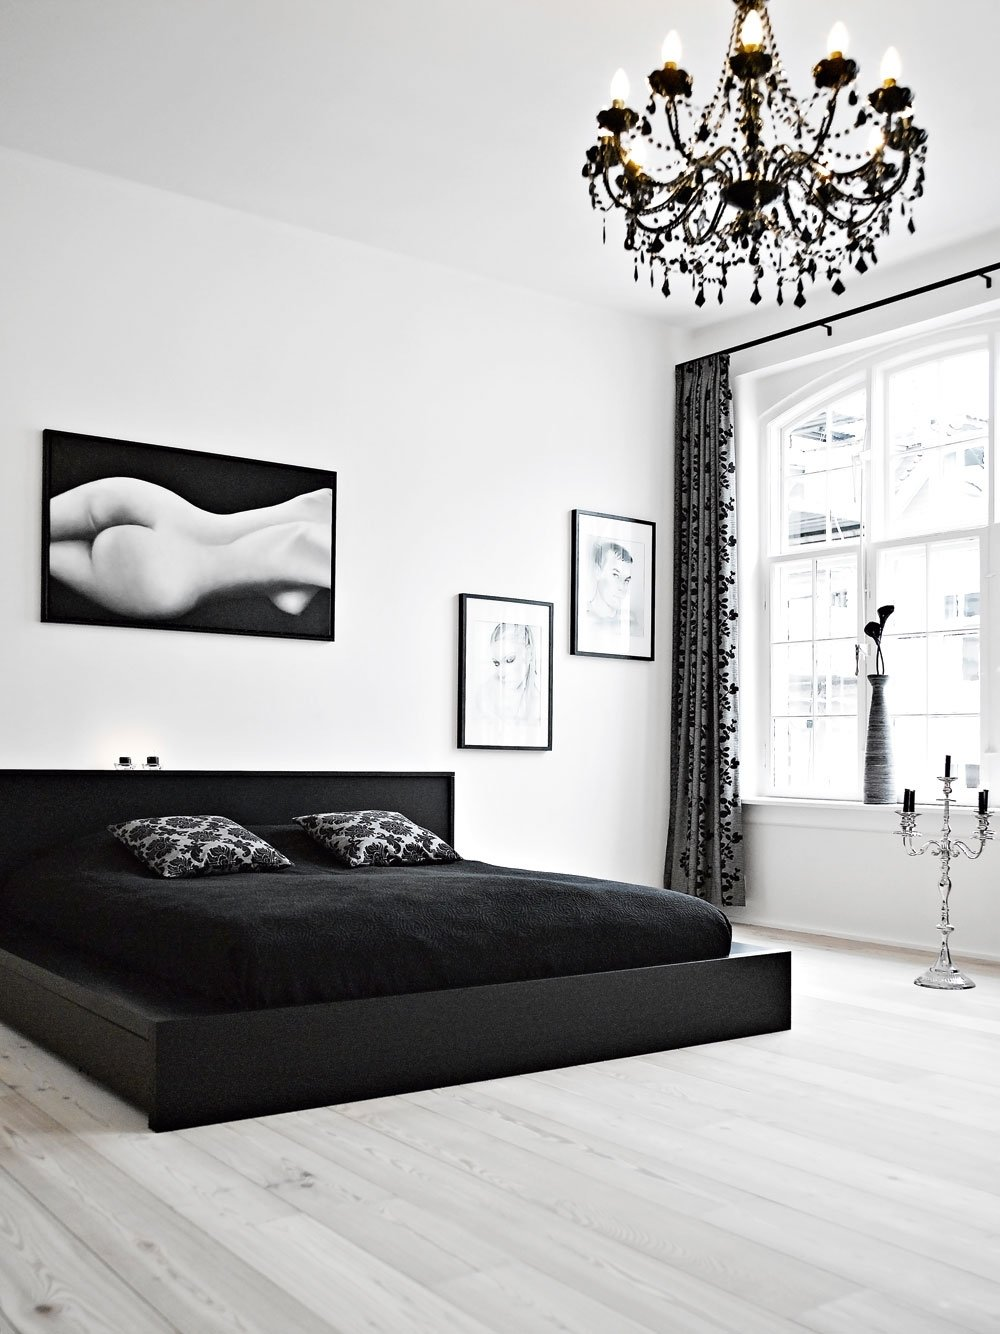 10 Awesome Black And White Room Ideas monochrome black and white bedroom furniture womenmisbehavin 1